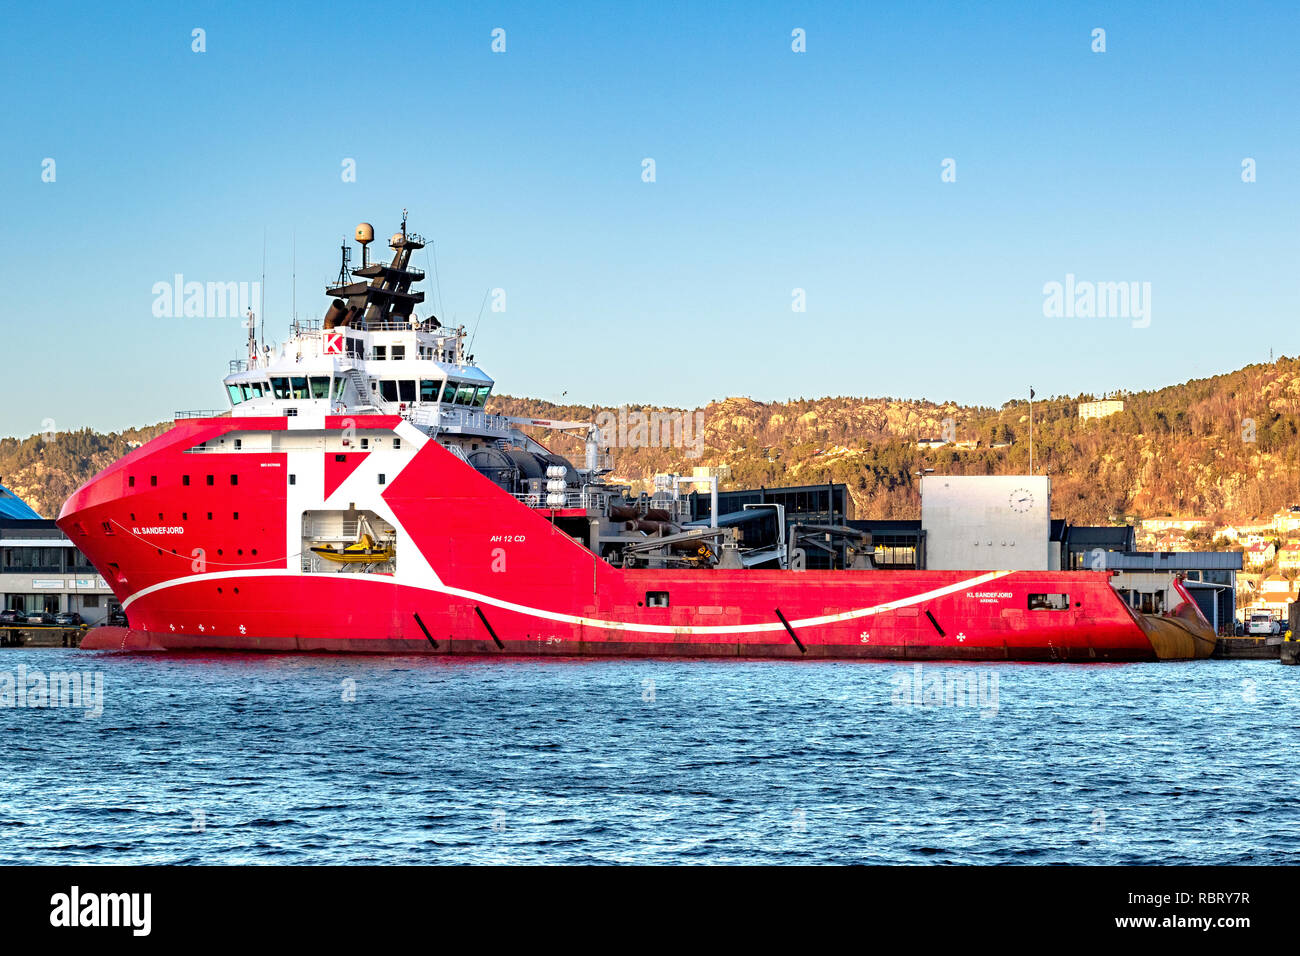 Offshore AHTS Anchor Handling Tug Supply vessel KL Sandefjord in the port of Bergen, Norway. - Stock Image